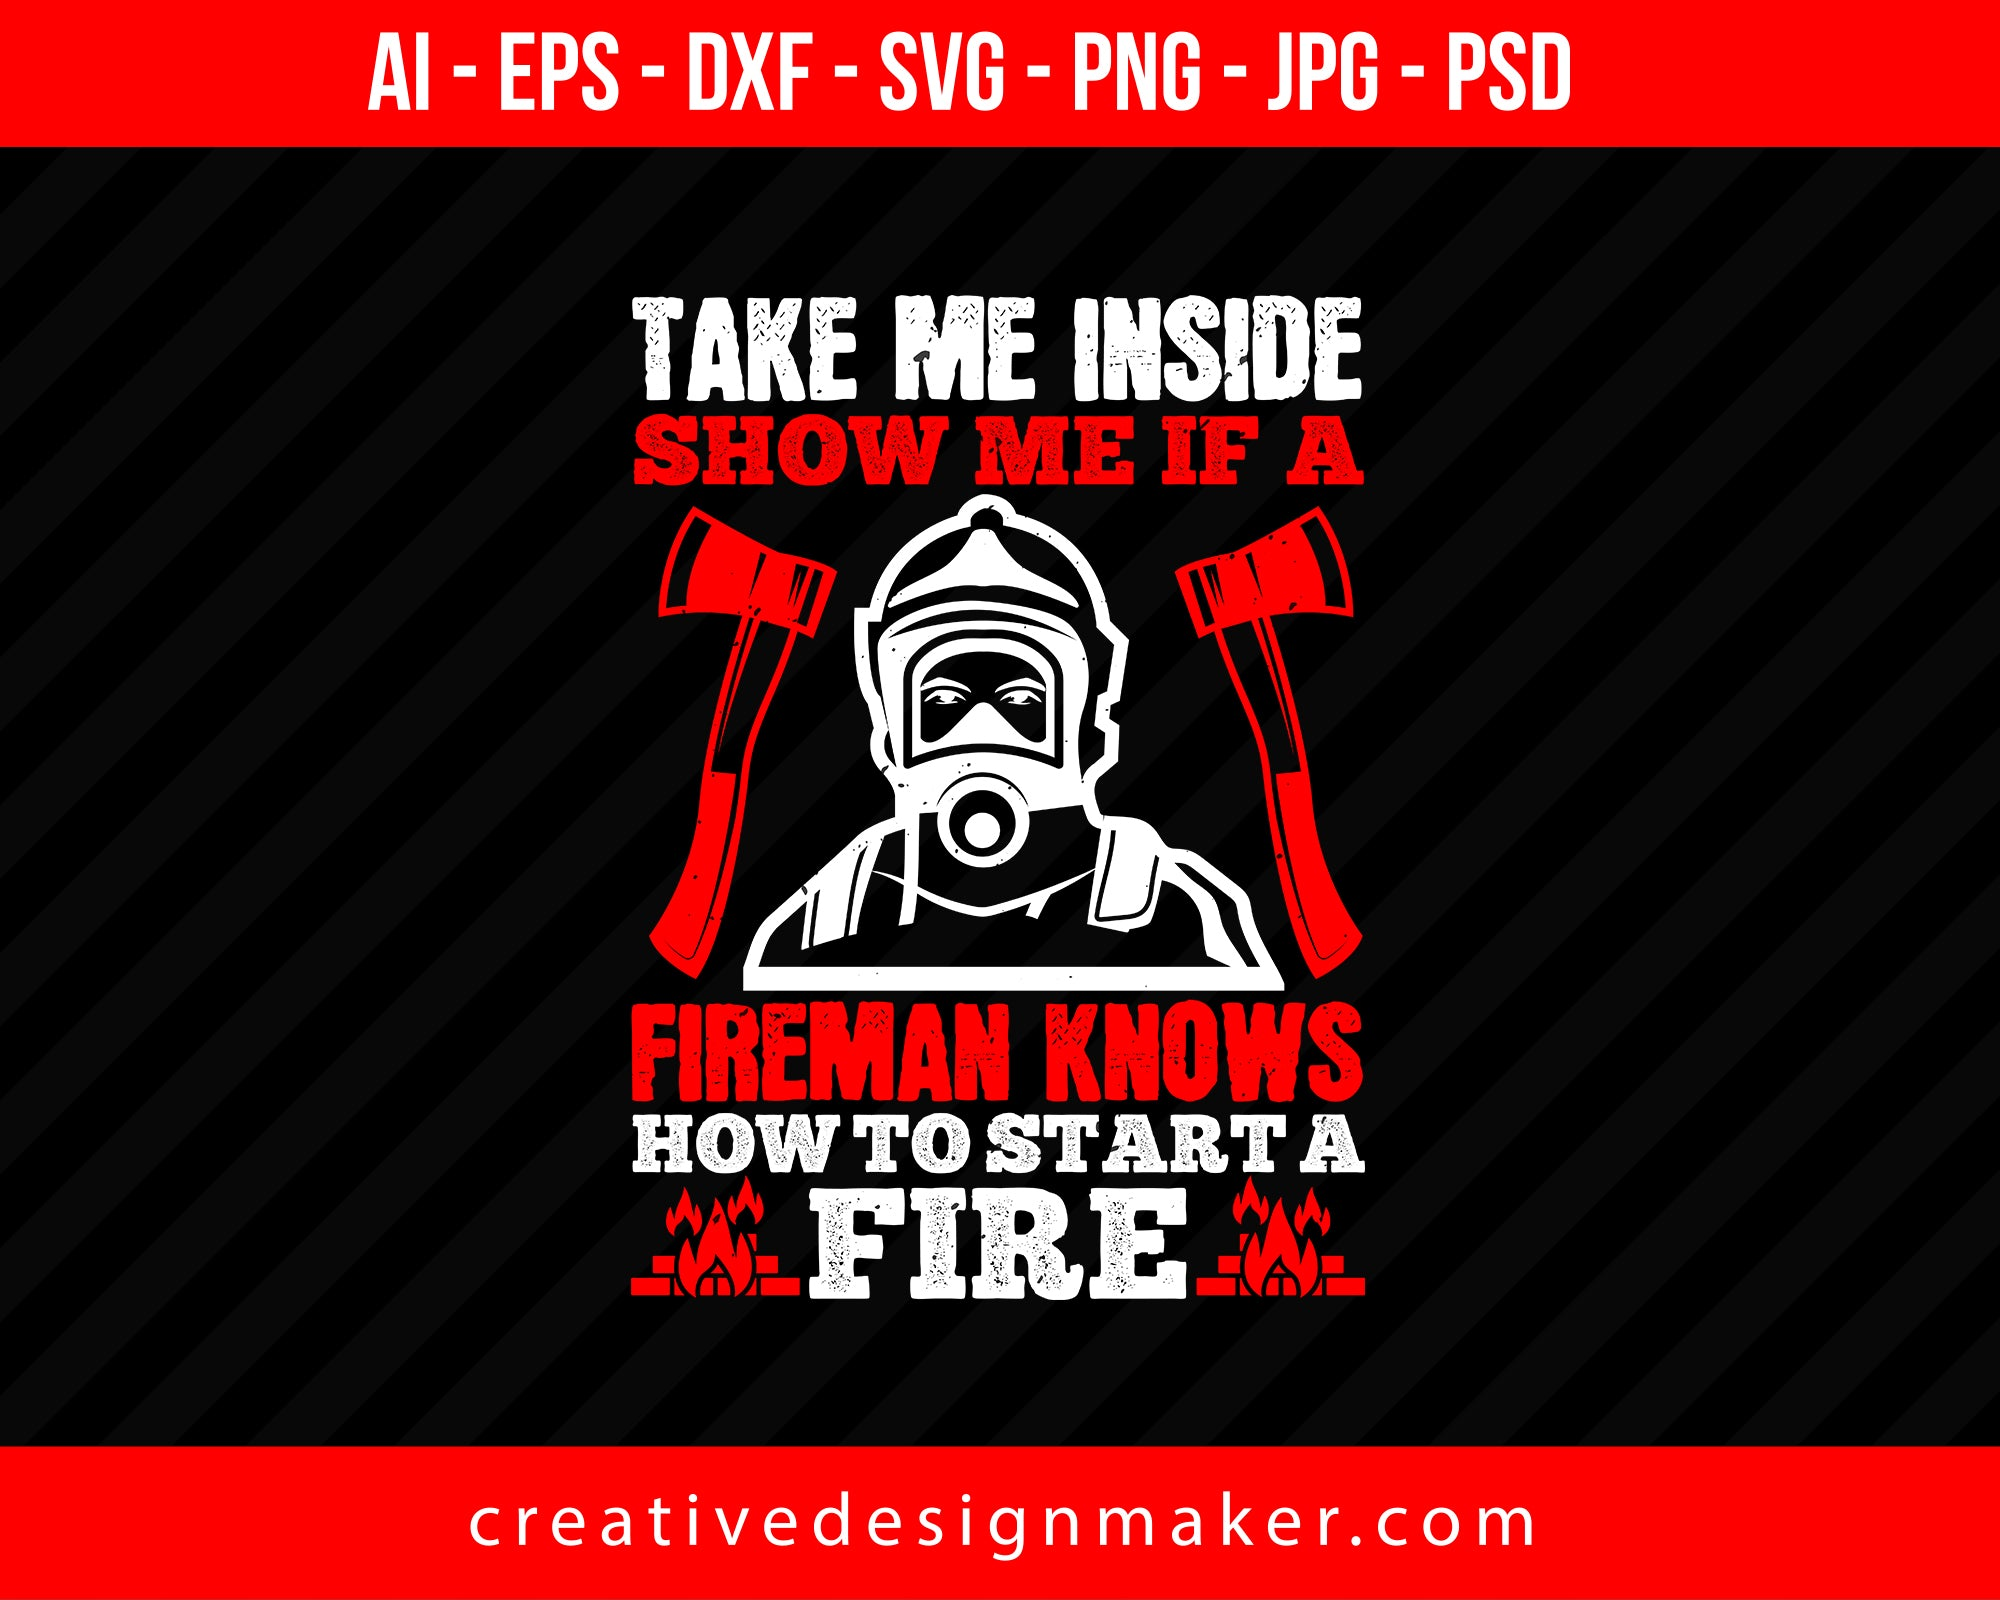 Take Me Inside Show Me If A Fireman Knows How To Strata Firefighter Print Ready Editable T-Shirt SVG Design!